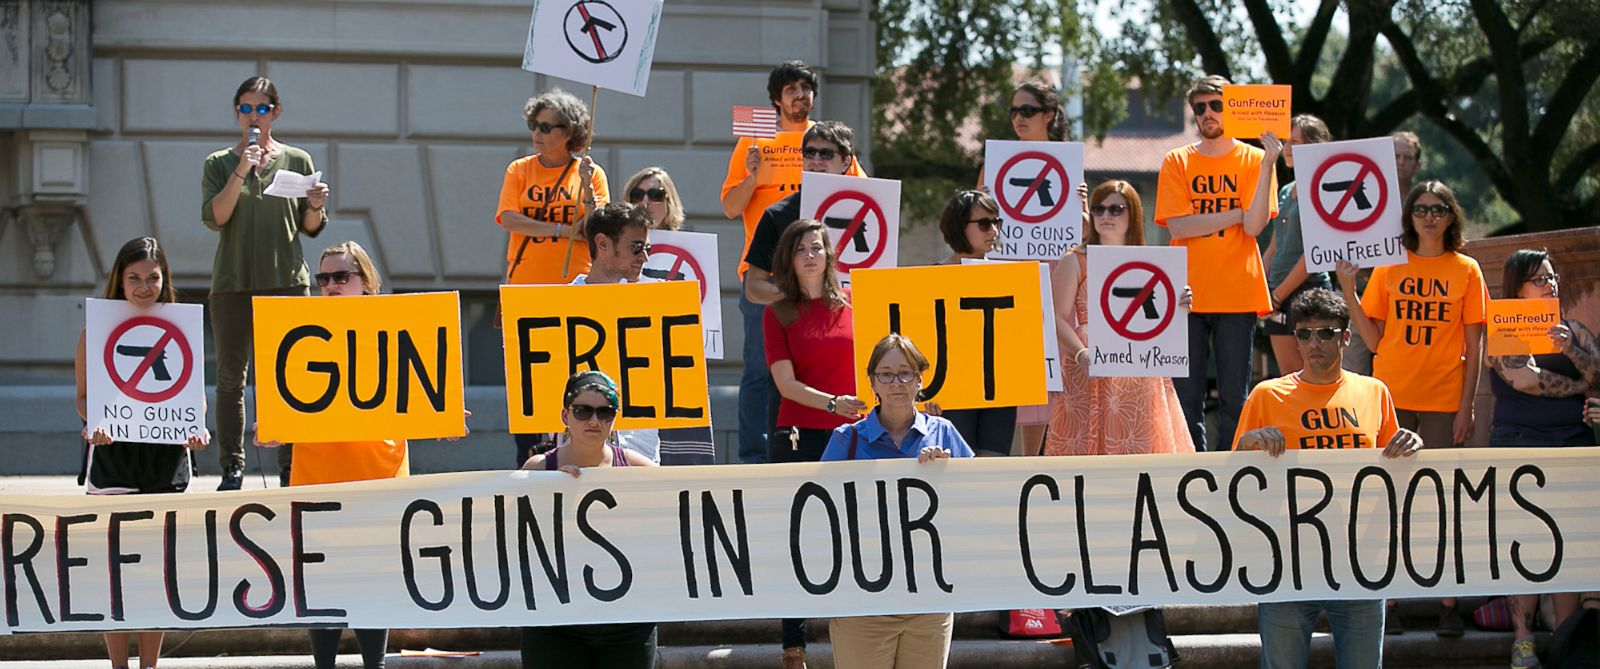 PHOTO: Protesters gather on the West Mall of the University of Texas campus to oppose a new state law that expands the rights of concealed handgun license holders to carry their weapons on public college campuses, Oct. 1, 2015.